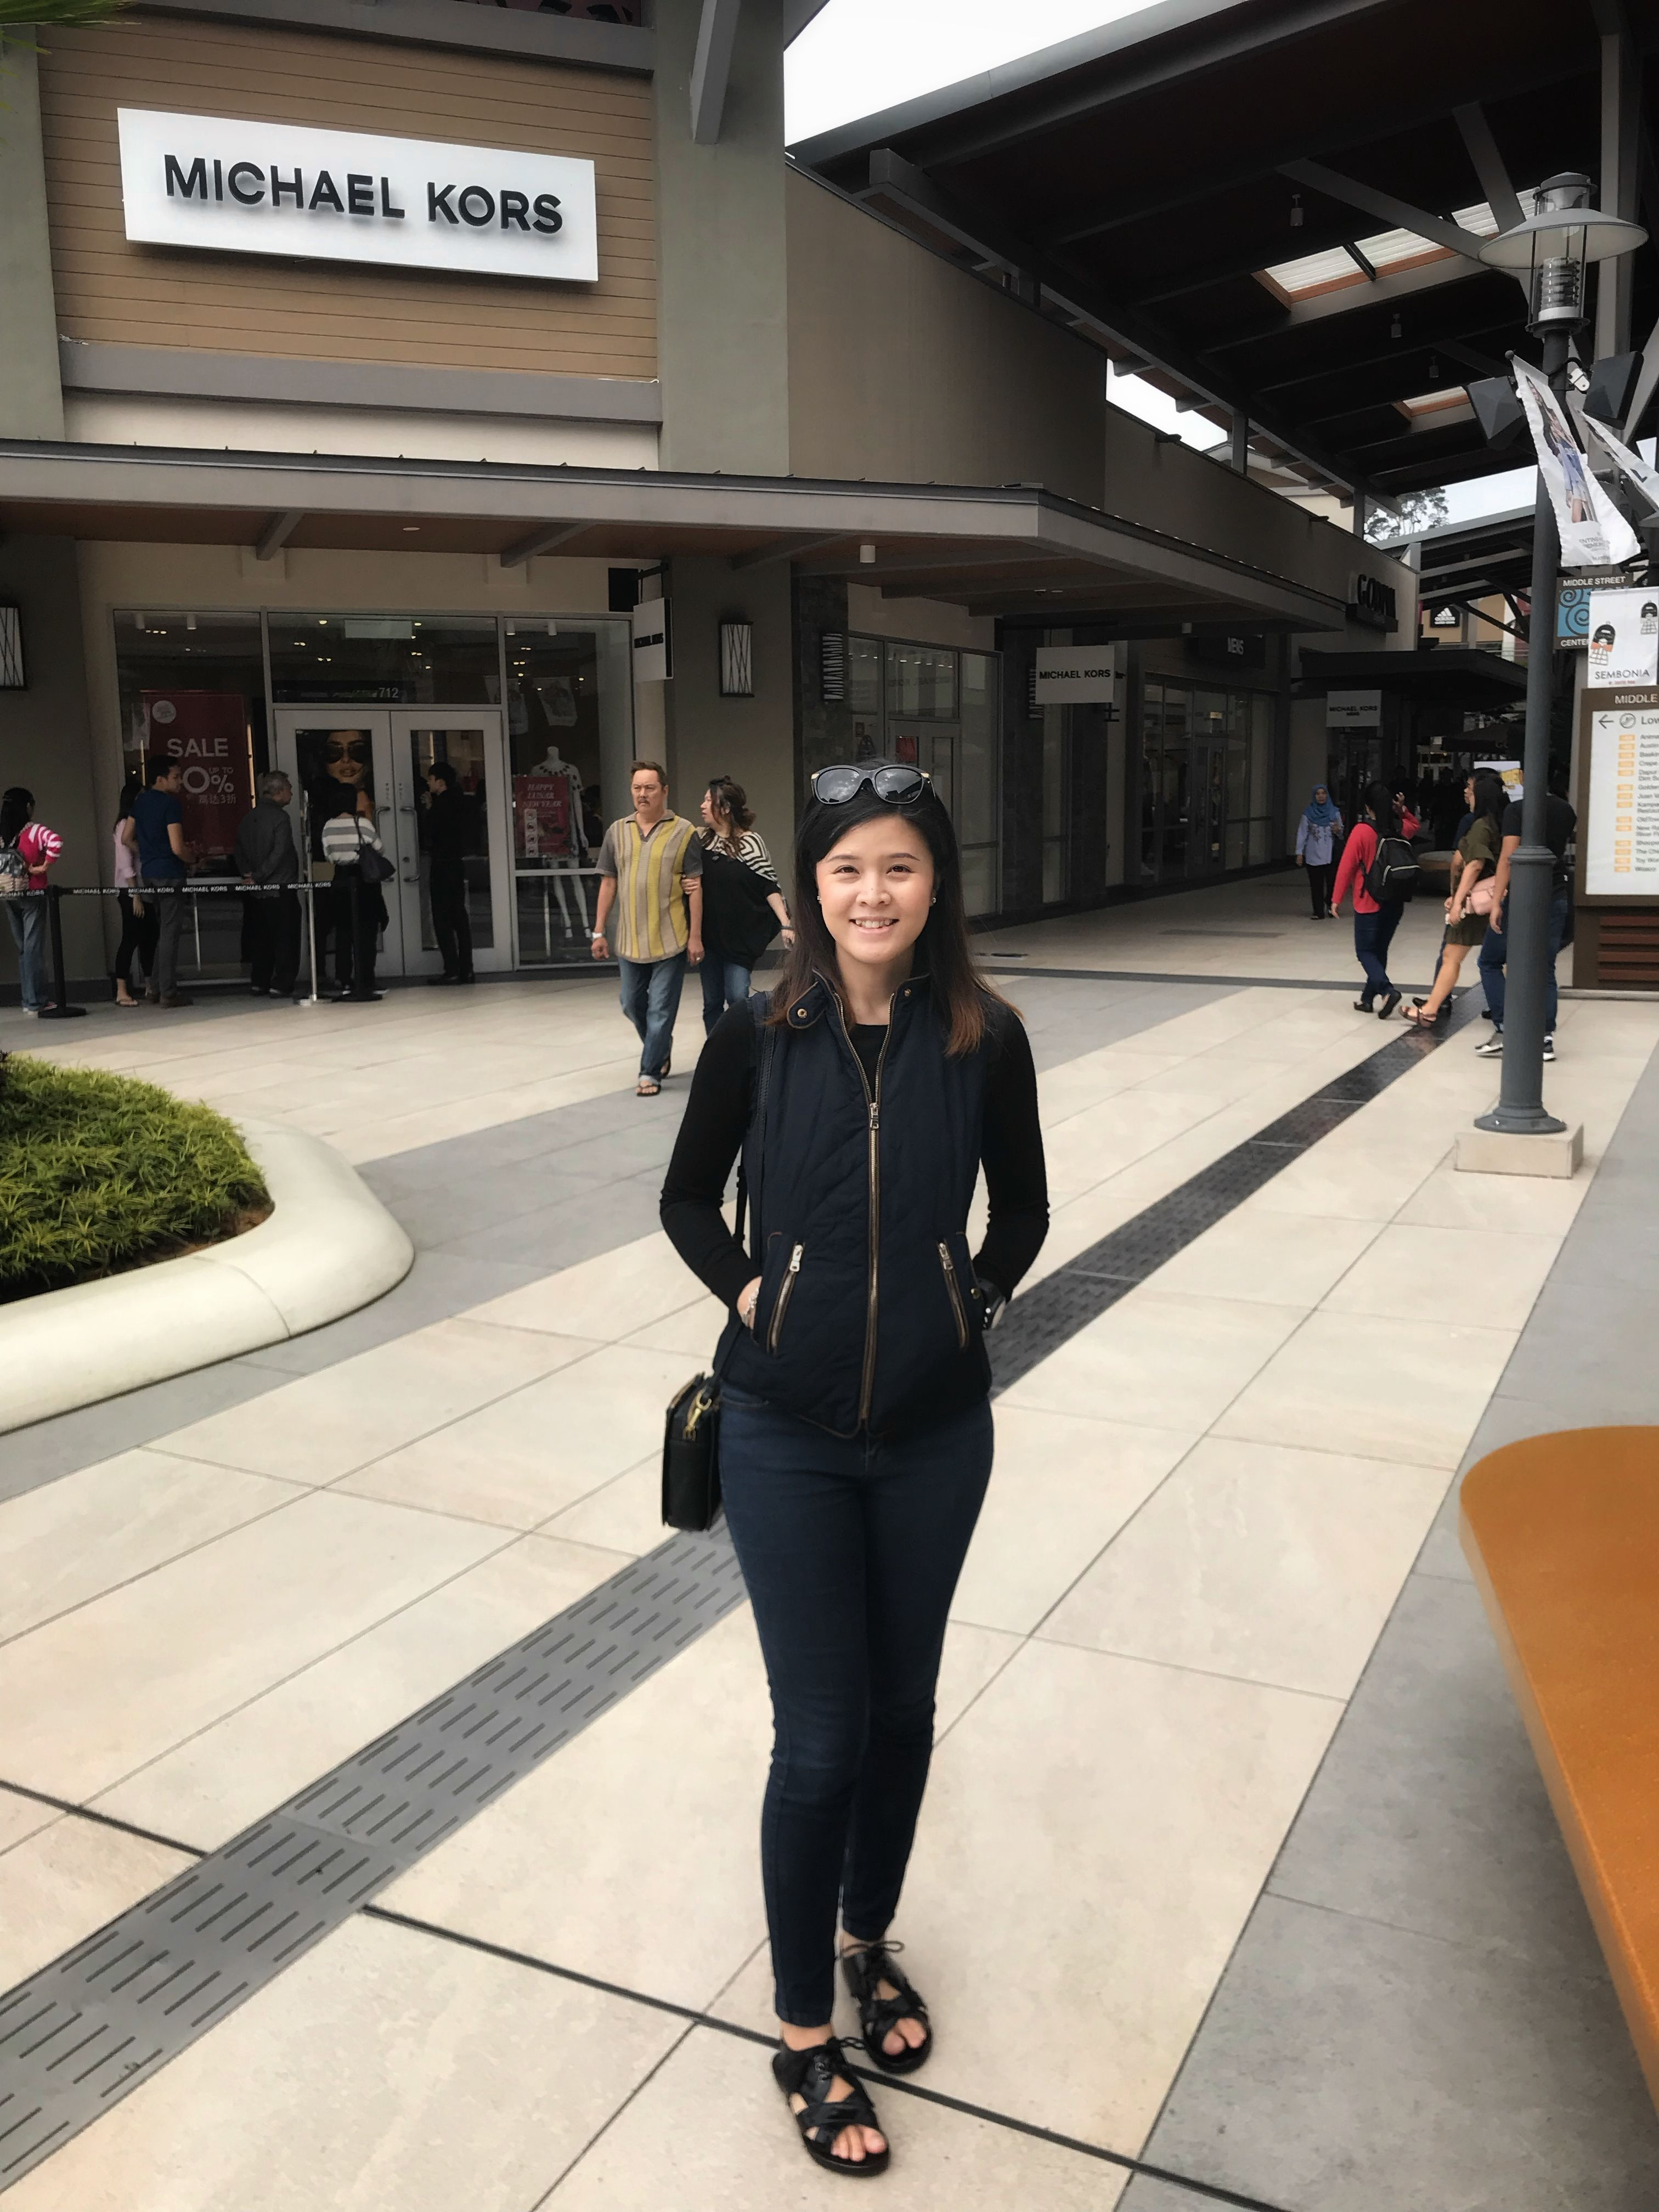 bcc7d2210c OOTD: Sleeveless jacket- Zara , long sleeves - Uniqlo , Crossbody Bag-  Fossil , Jeans - Forever 21, Sunglasses- Burberry, Occasion - Genting  Premium Outlet ...